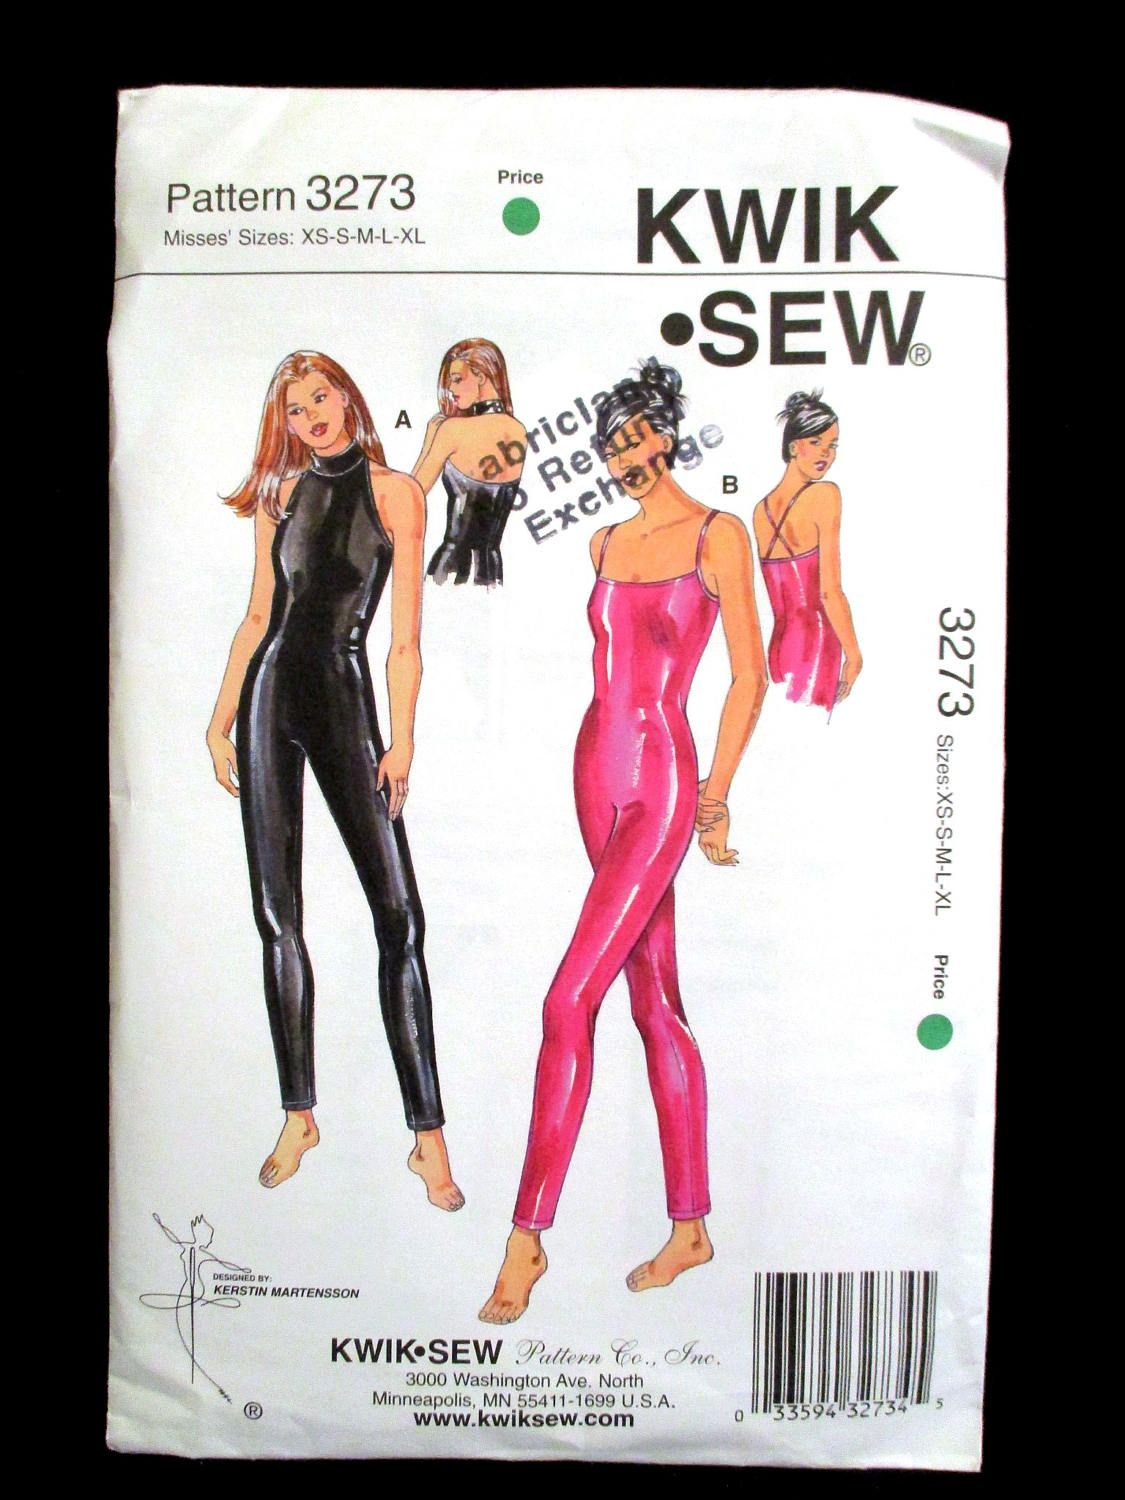 Unitard sewing pattern kwik sew 3273 misses ladies size xs s m l unitard sewing pattern kwik sew 3273 misses ladies size xs s m l xl stretch knit lycra spandex jeuxipadfo Gallery